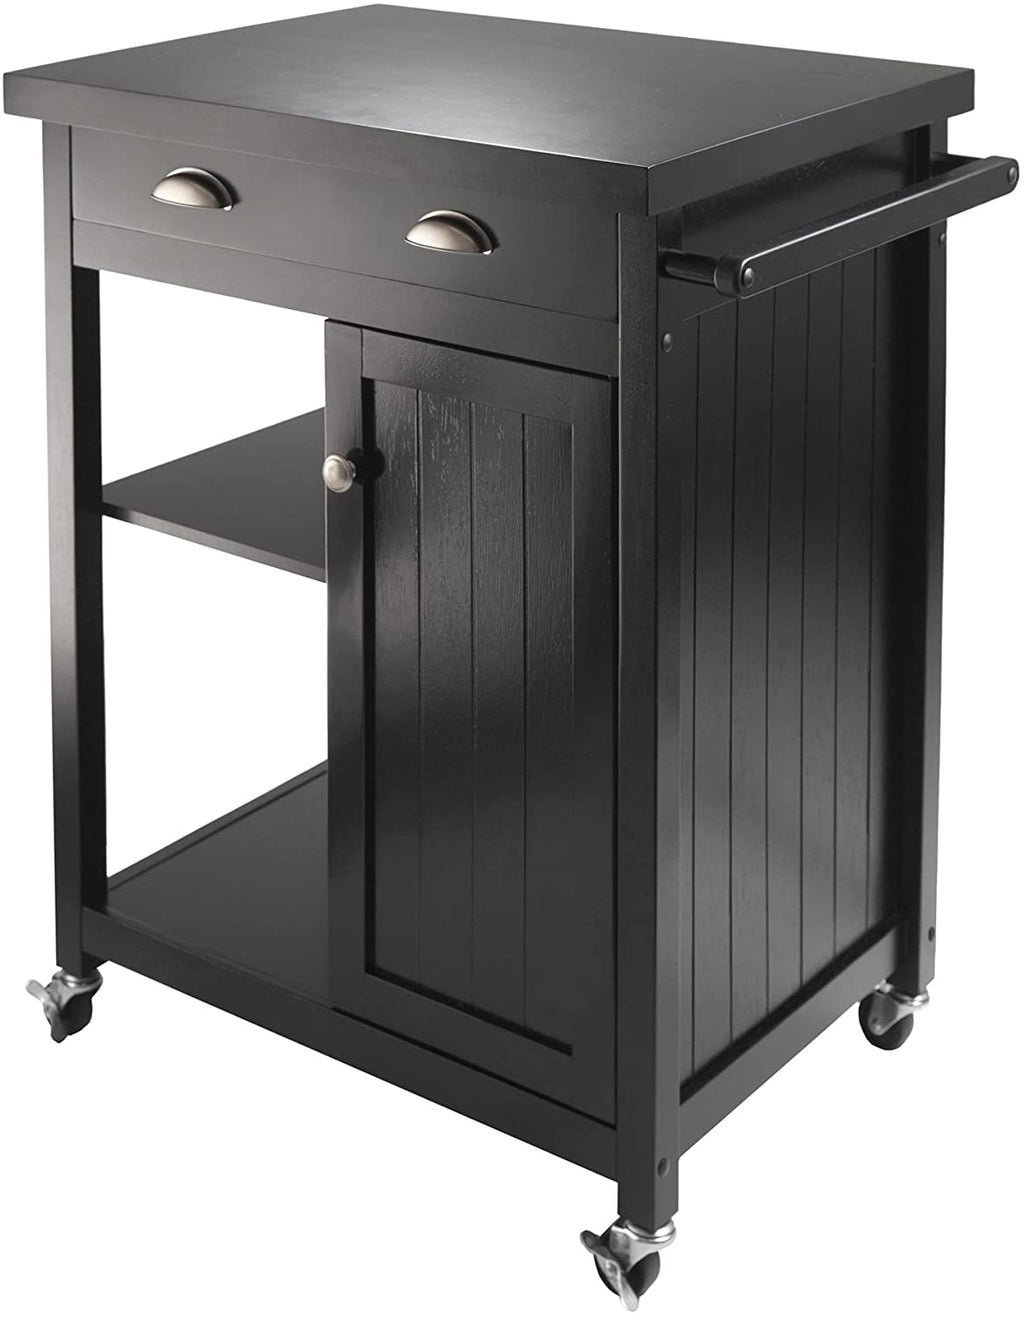 Timber Kitchen Cart With Wainscot panel - Pot Racks Plus